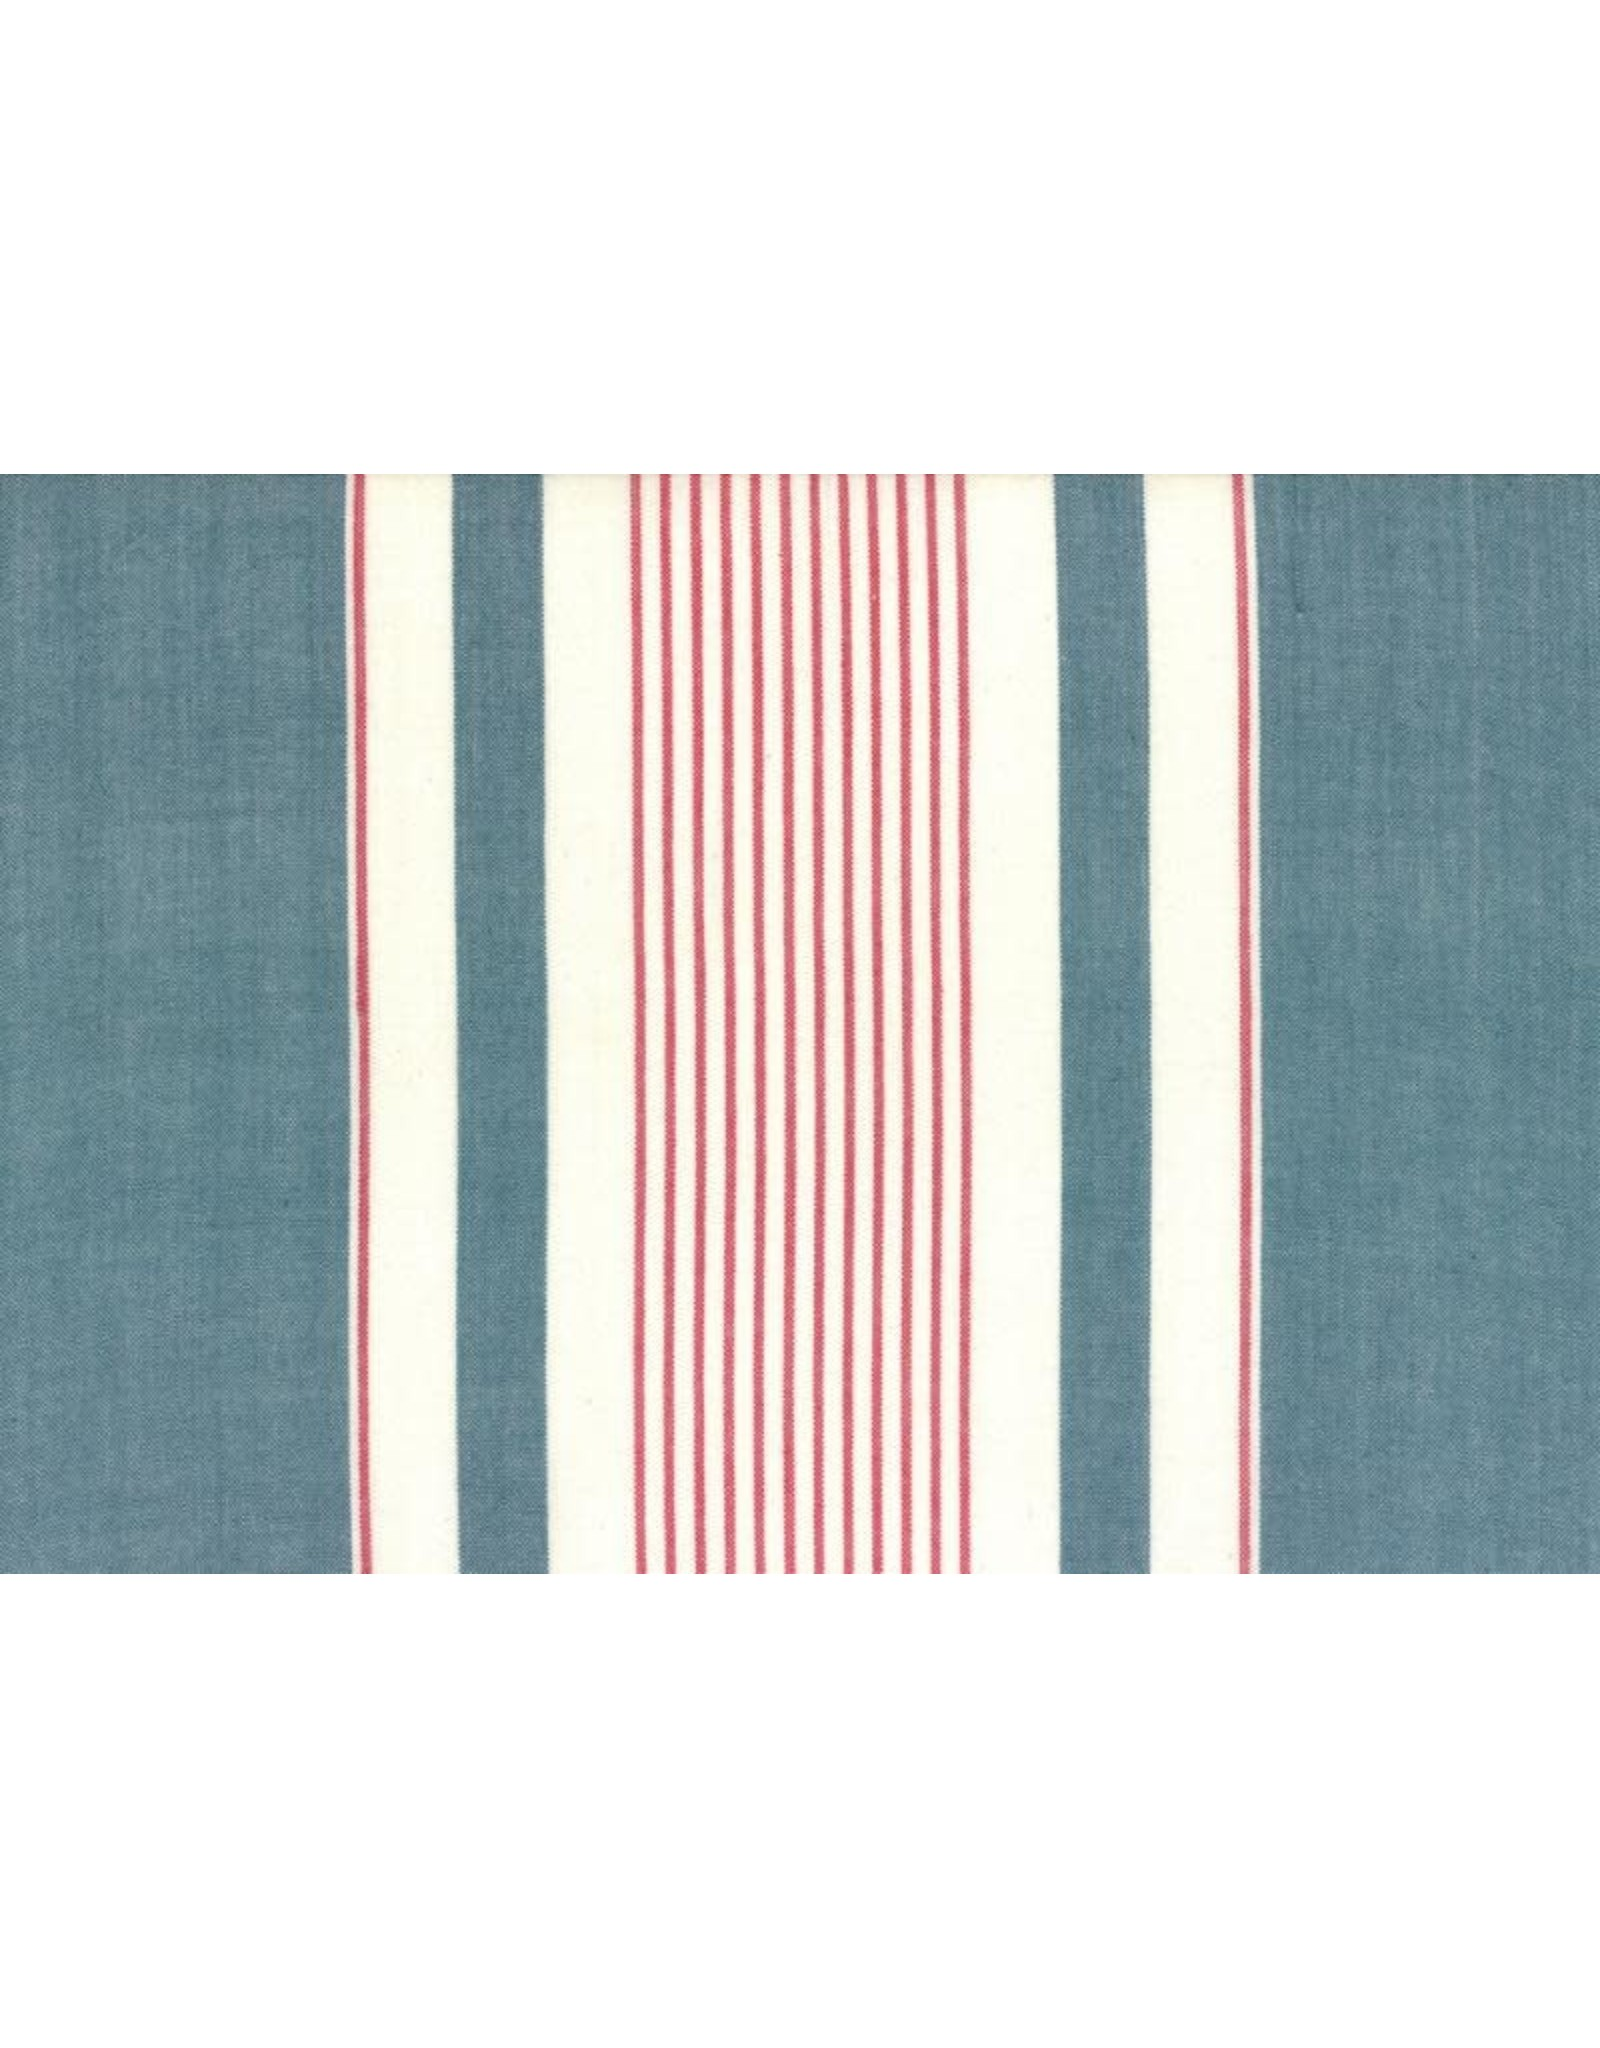 """Moda Woven Toweling, 16"""", Picnic Point Tea in Blue with Red and White Stripes  992 239, Sold by the Yard"""